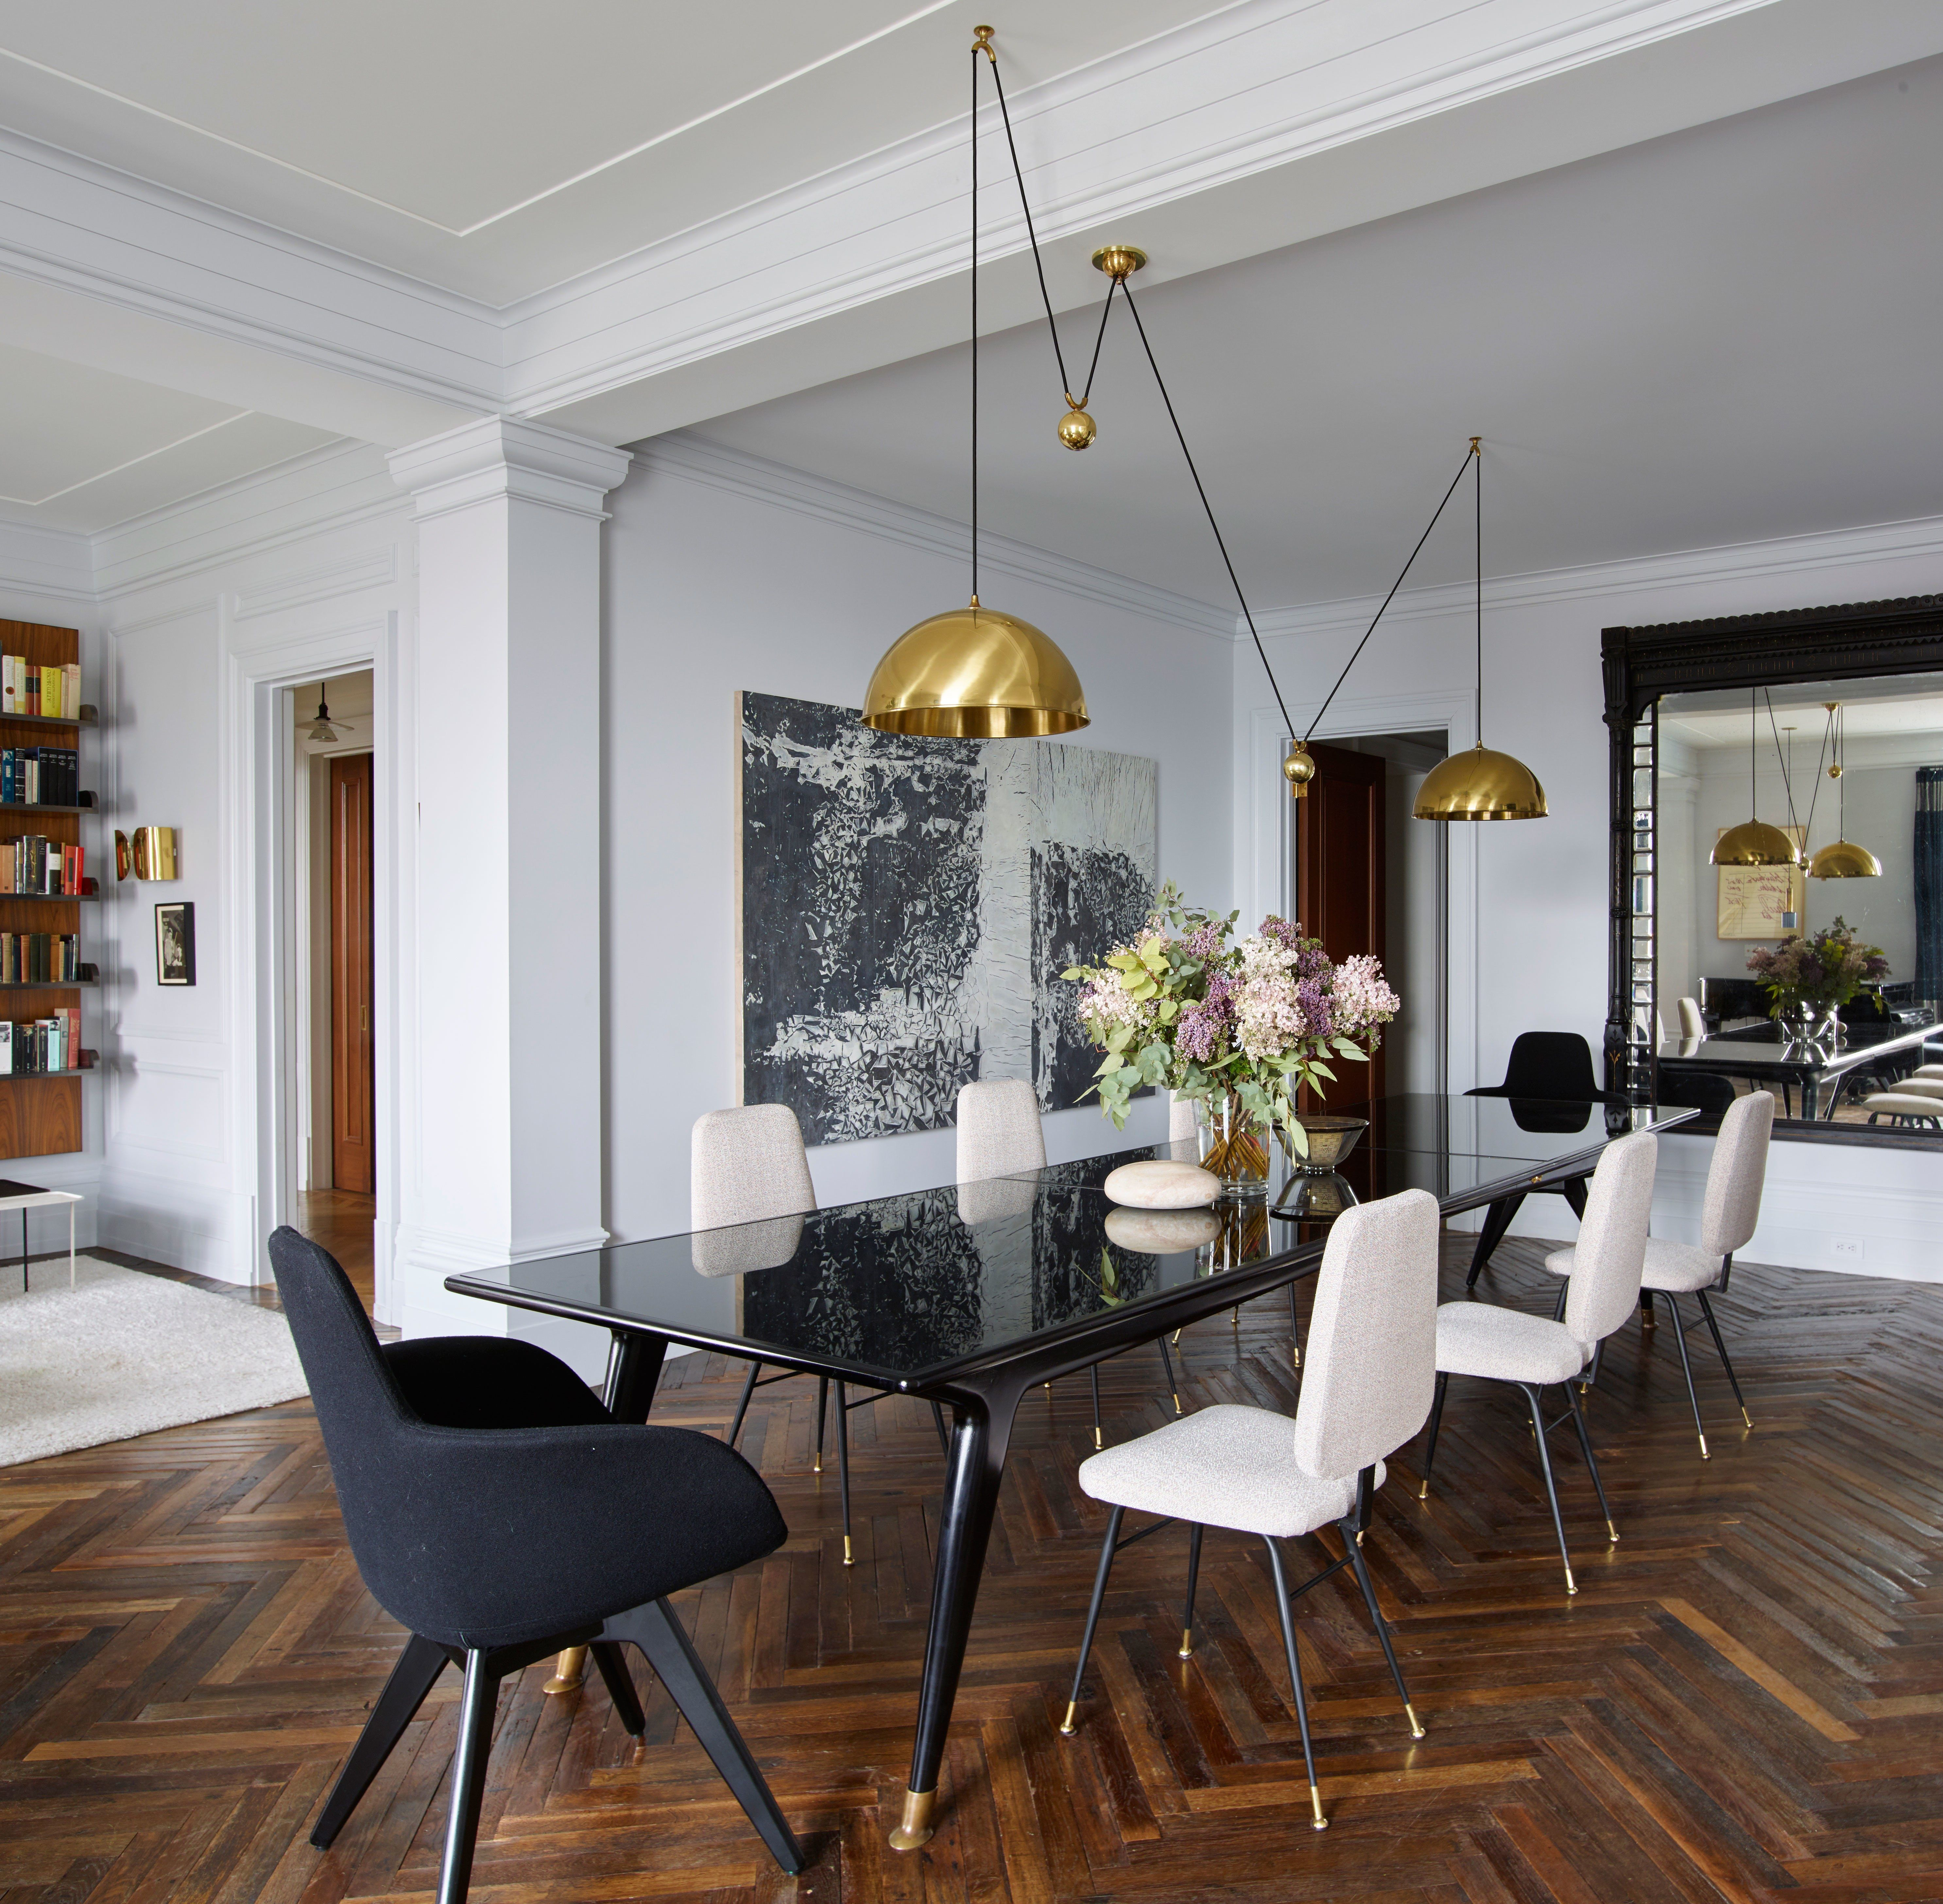 126 Custom Luxury Dining Room Interior Designs: An Elegant Aerie Overlooking Central Park Is Revived With